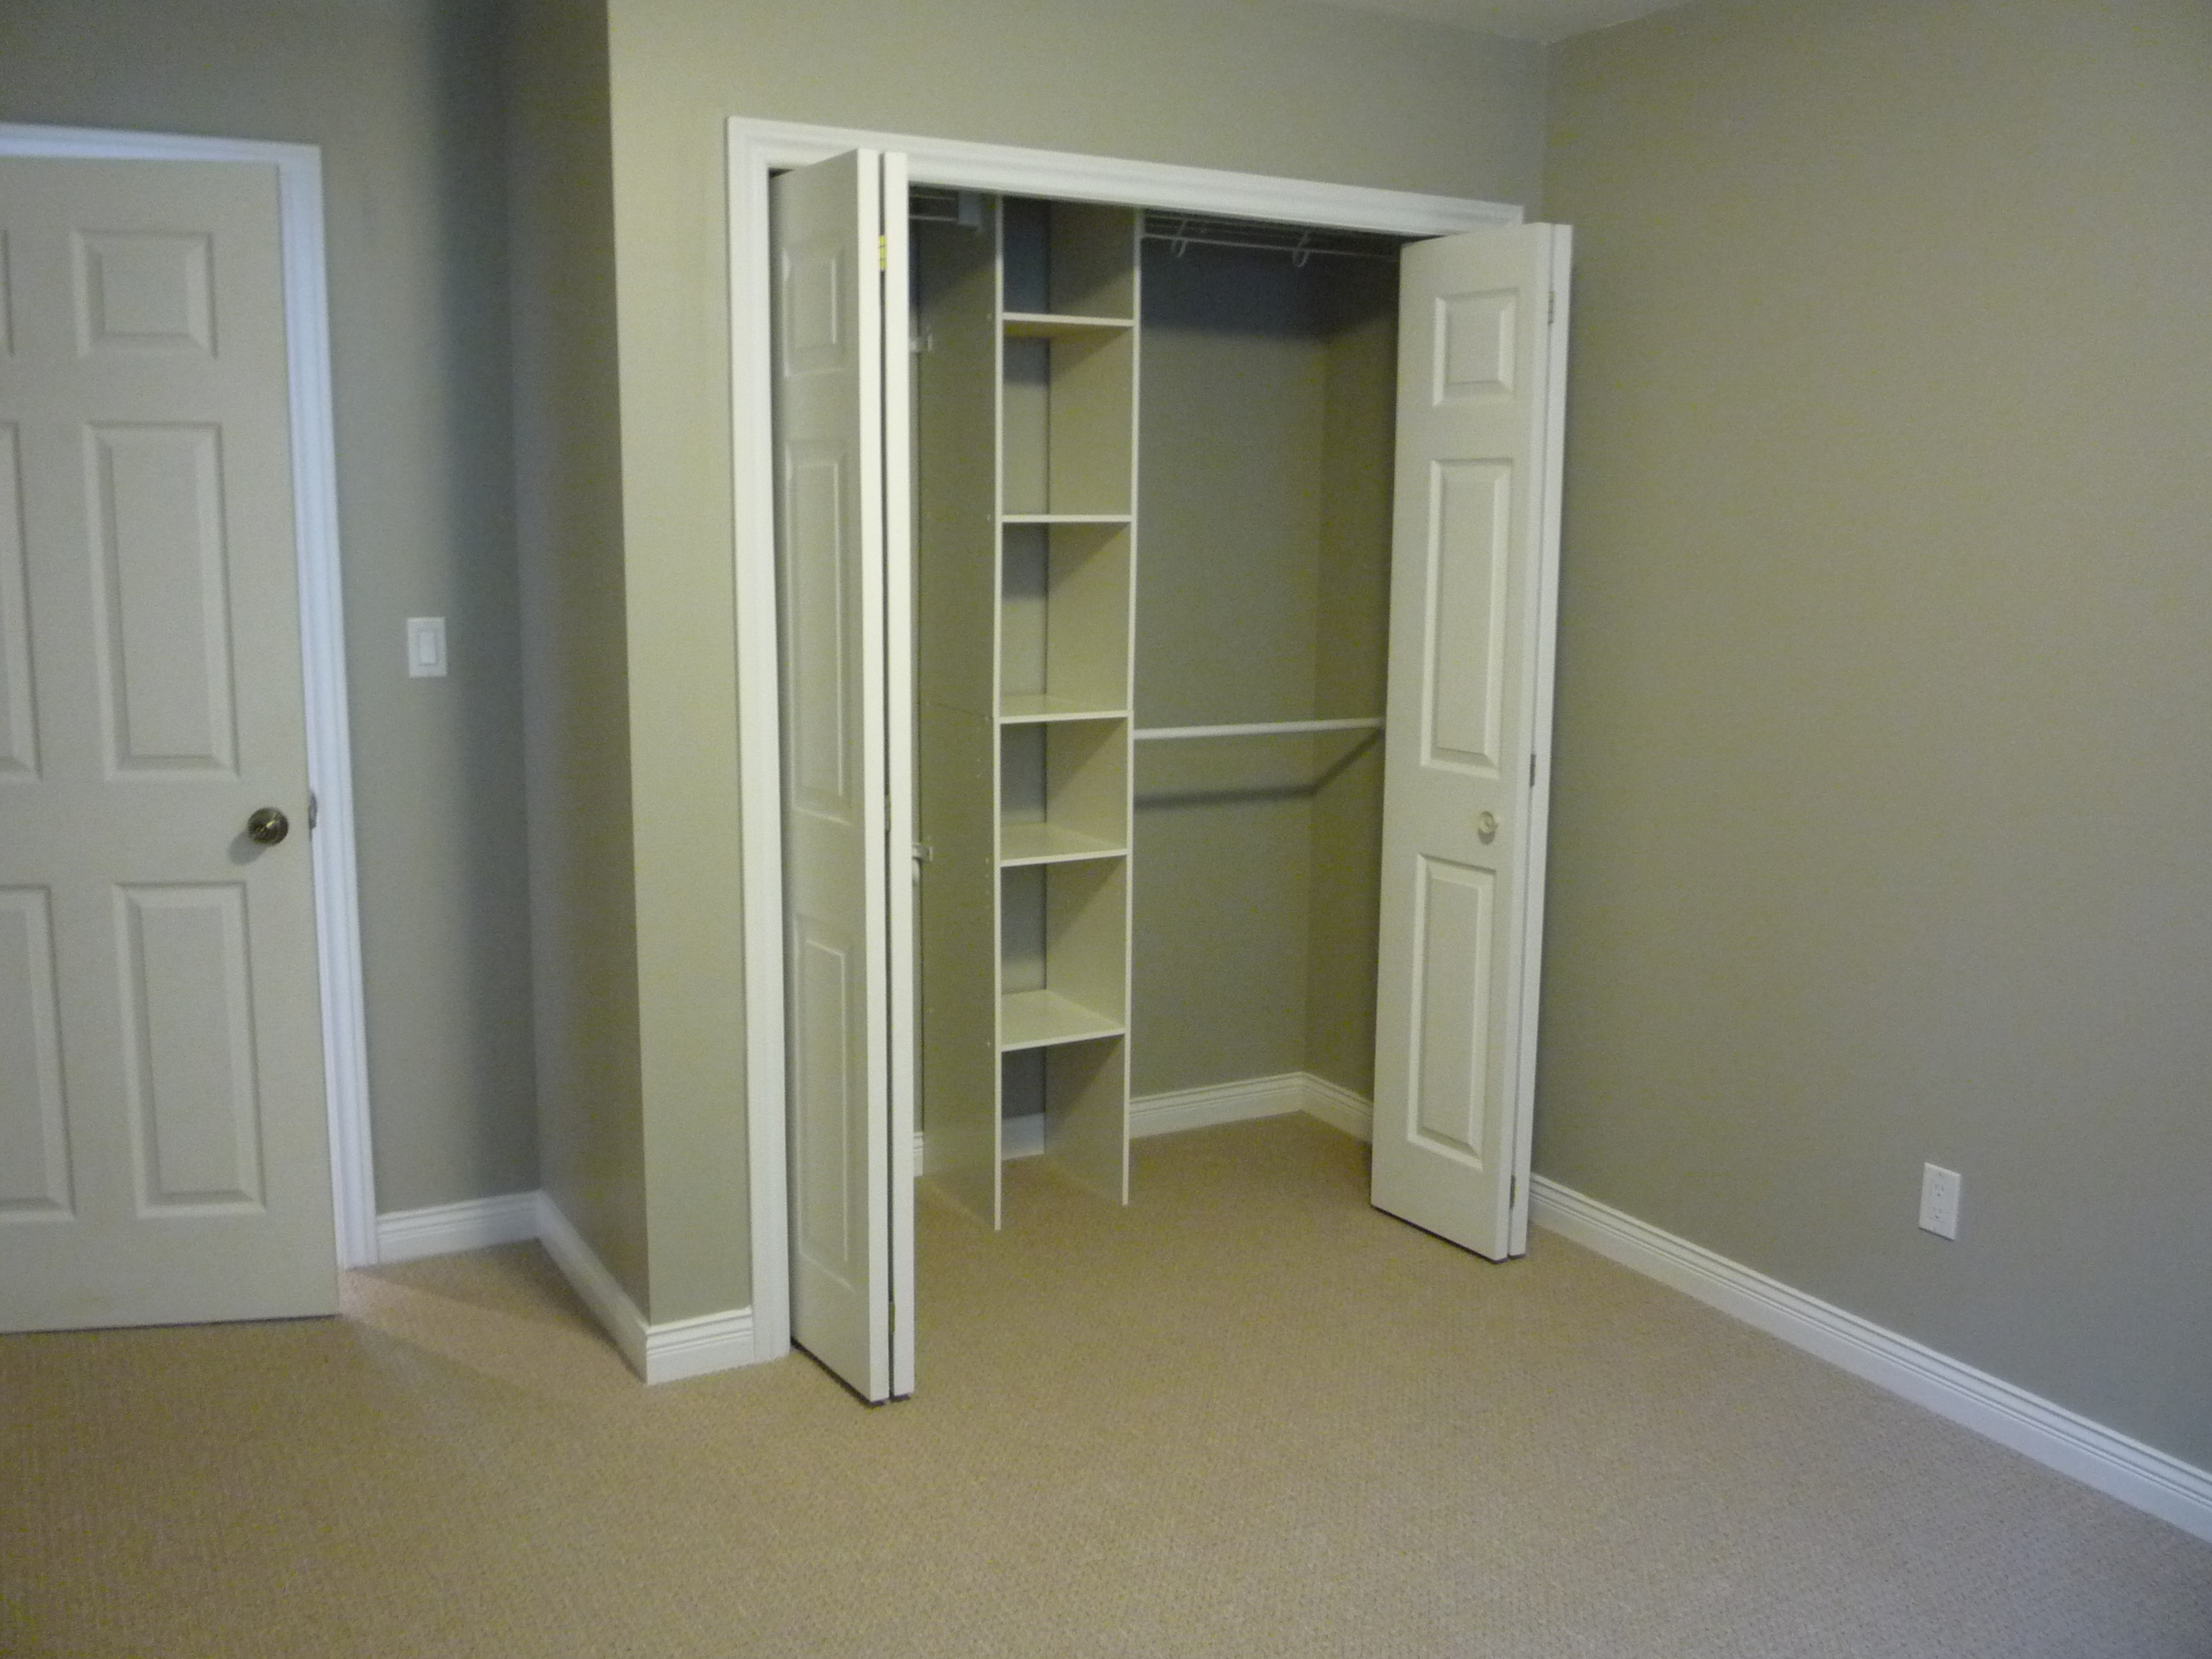 Reach-In Closet with Interior Organizers in Bedroom